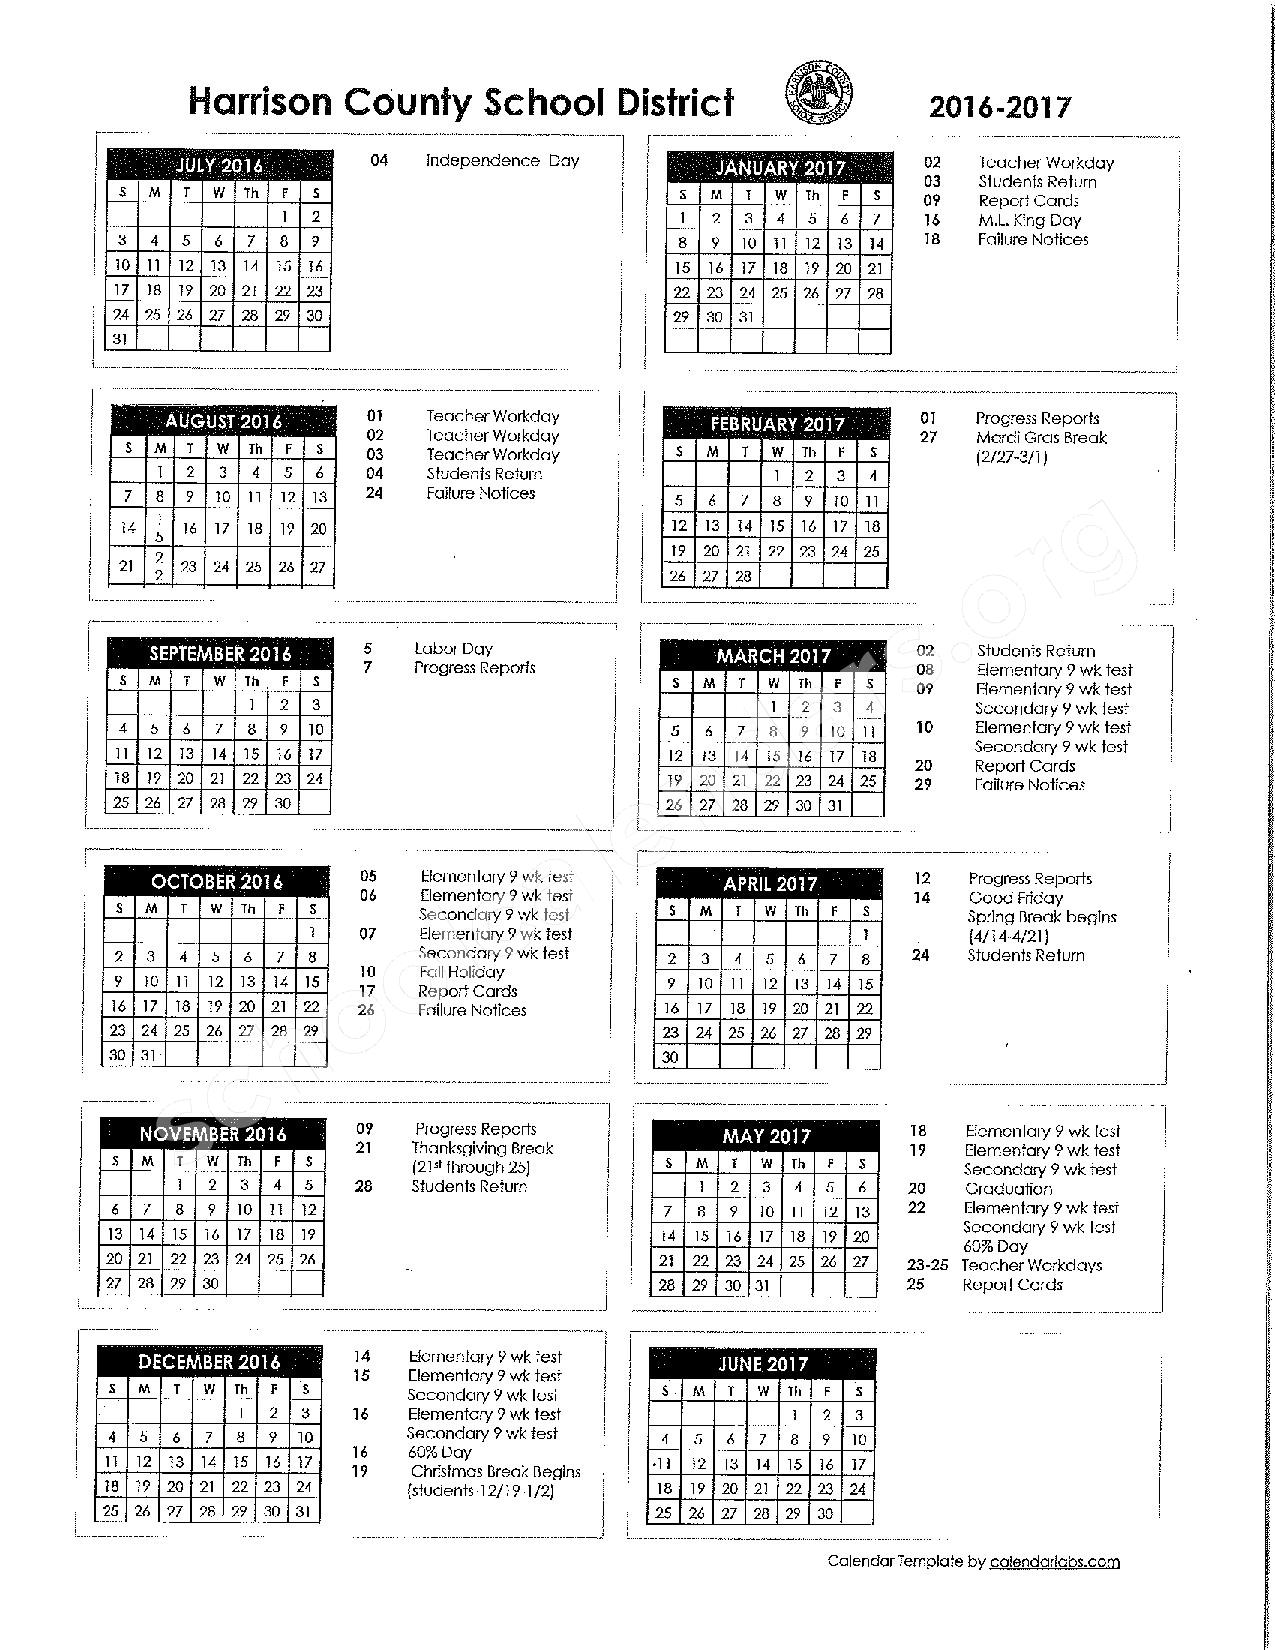 2016 - 2017 District Calendar – Harrison County School District – page 1